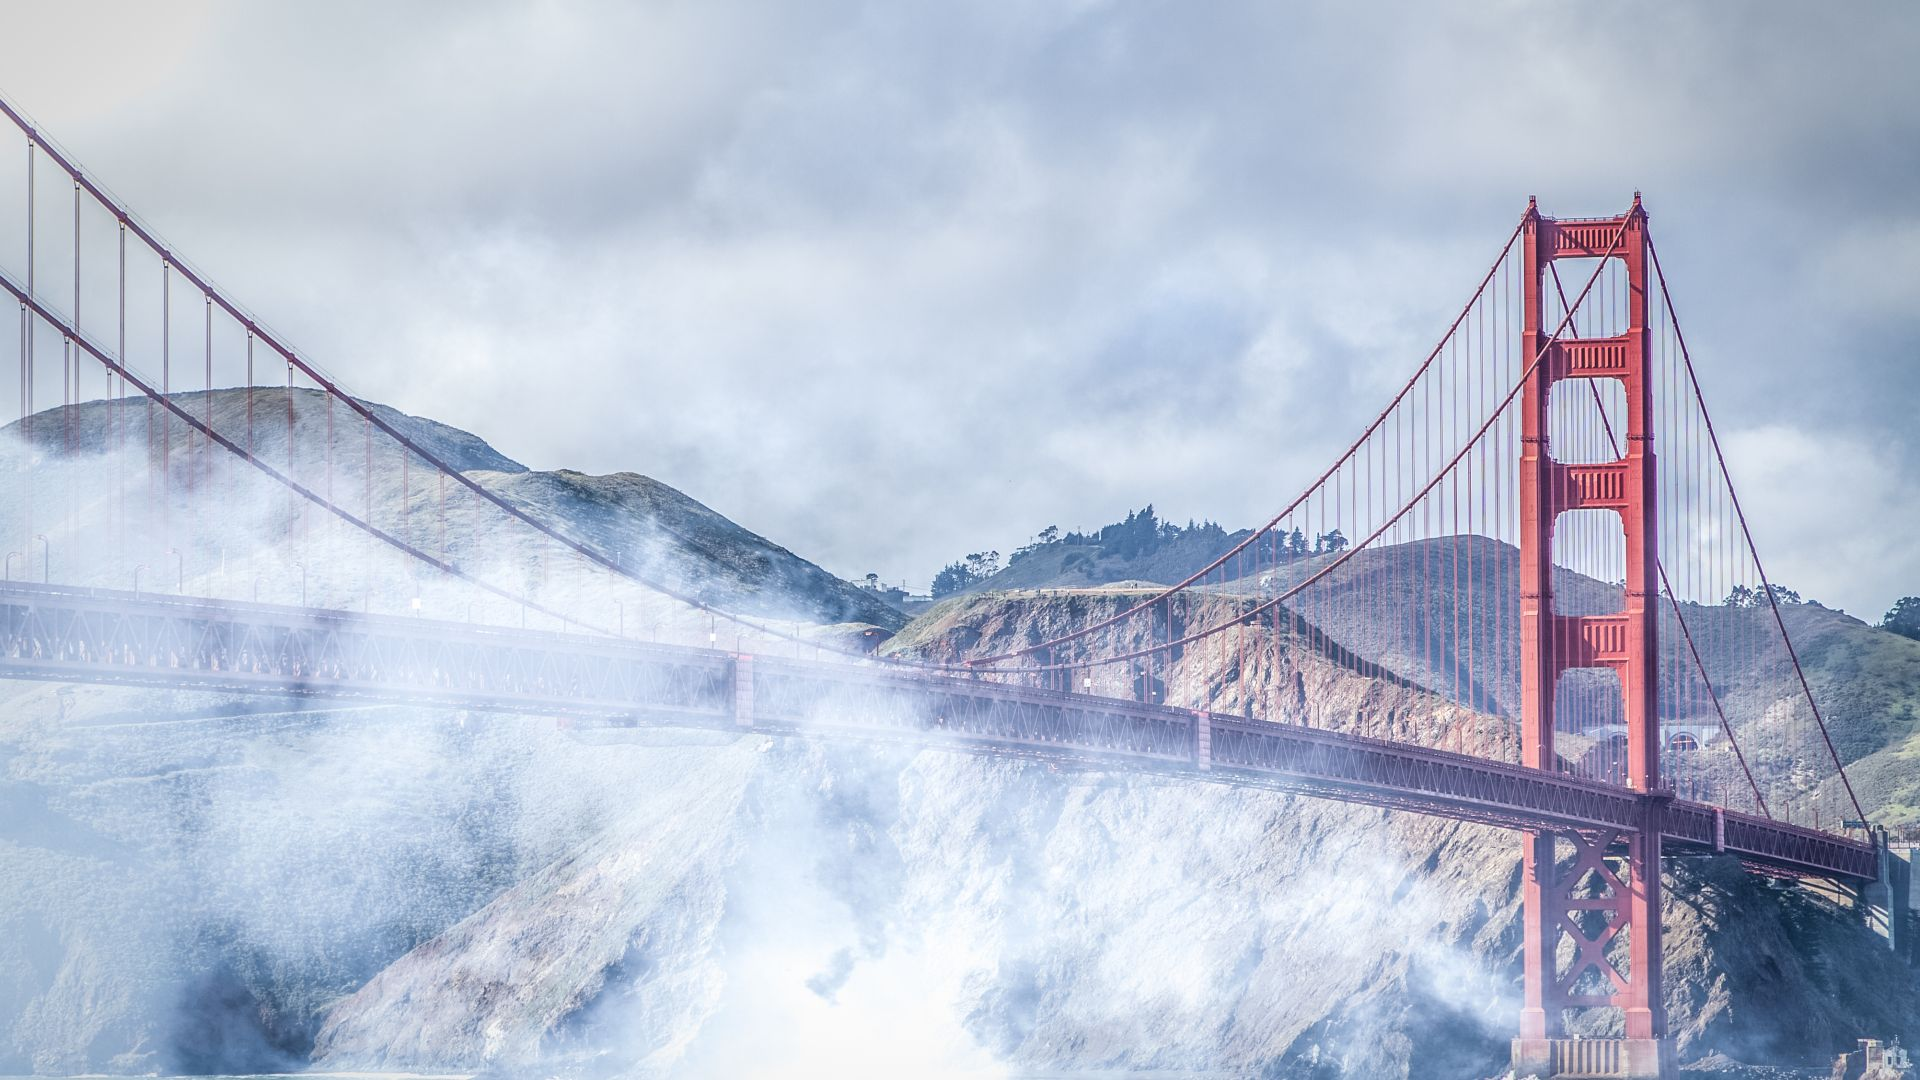 Сан - Франциско, 4k, 5k, Золотые Ворота, США, туман, мост, San Francisco, 4k, 5k wallpaper, Golden Gate, USA, fog, bridge (horizontal)